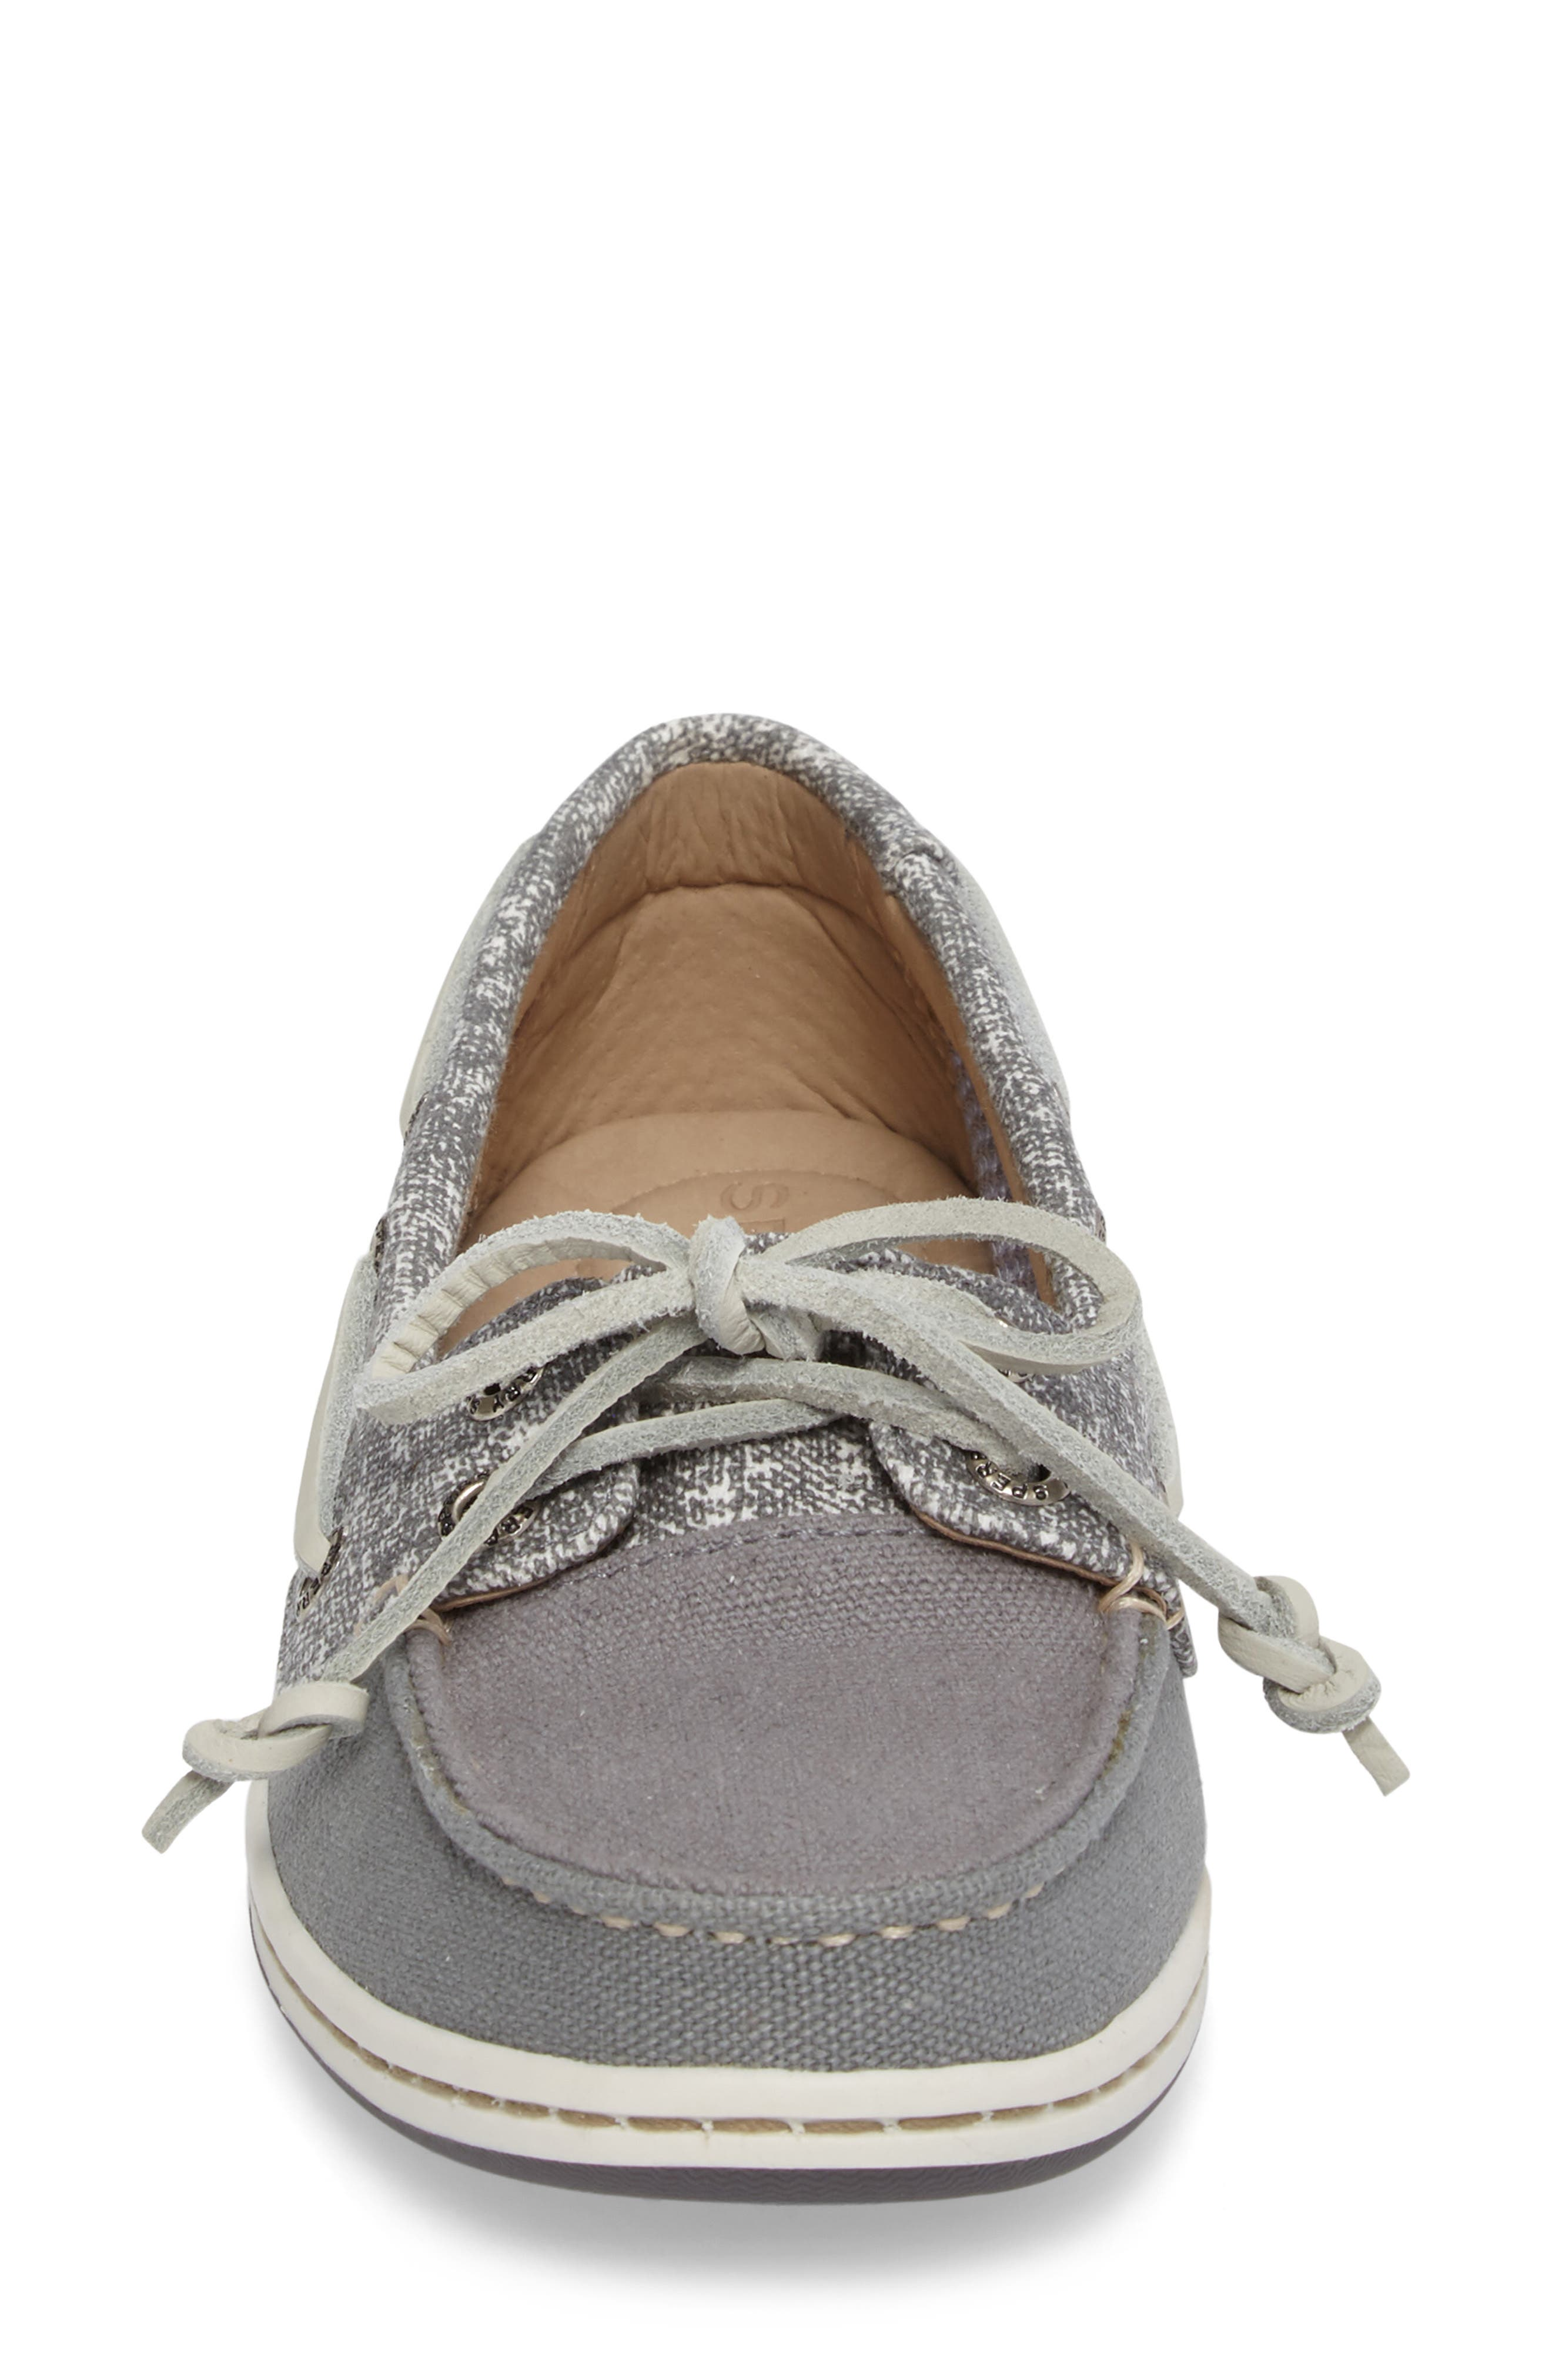 'Firefish' Boat Shoe,                             Alternate thumbnail 31, color,